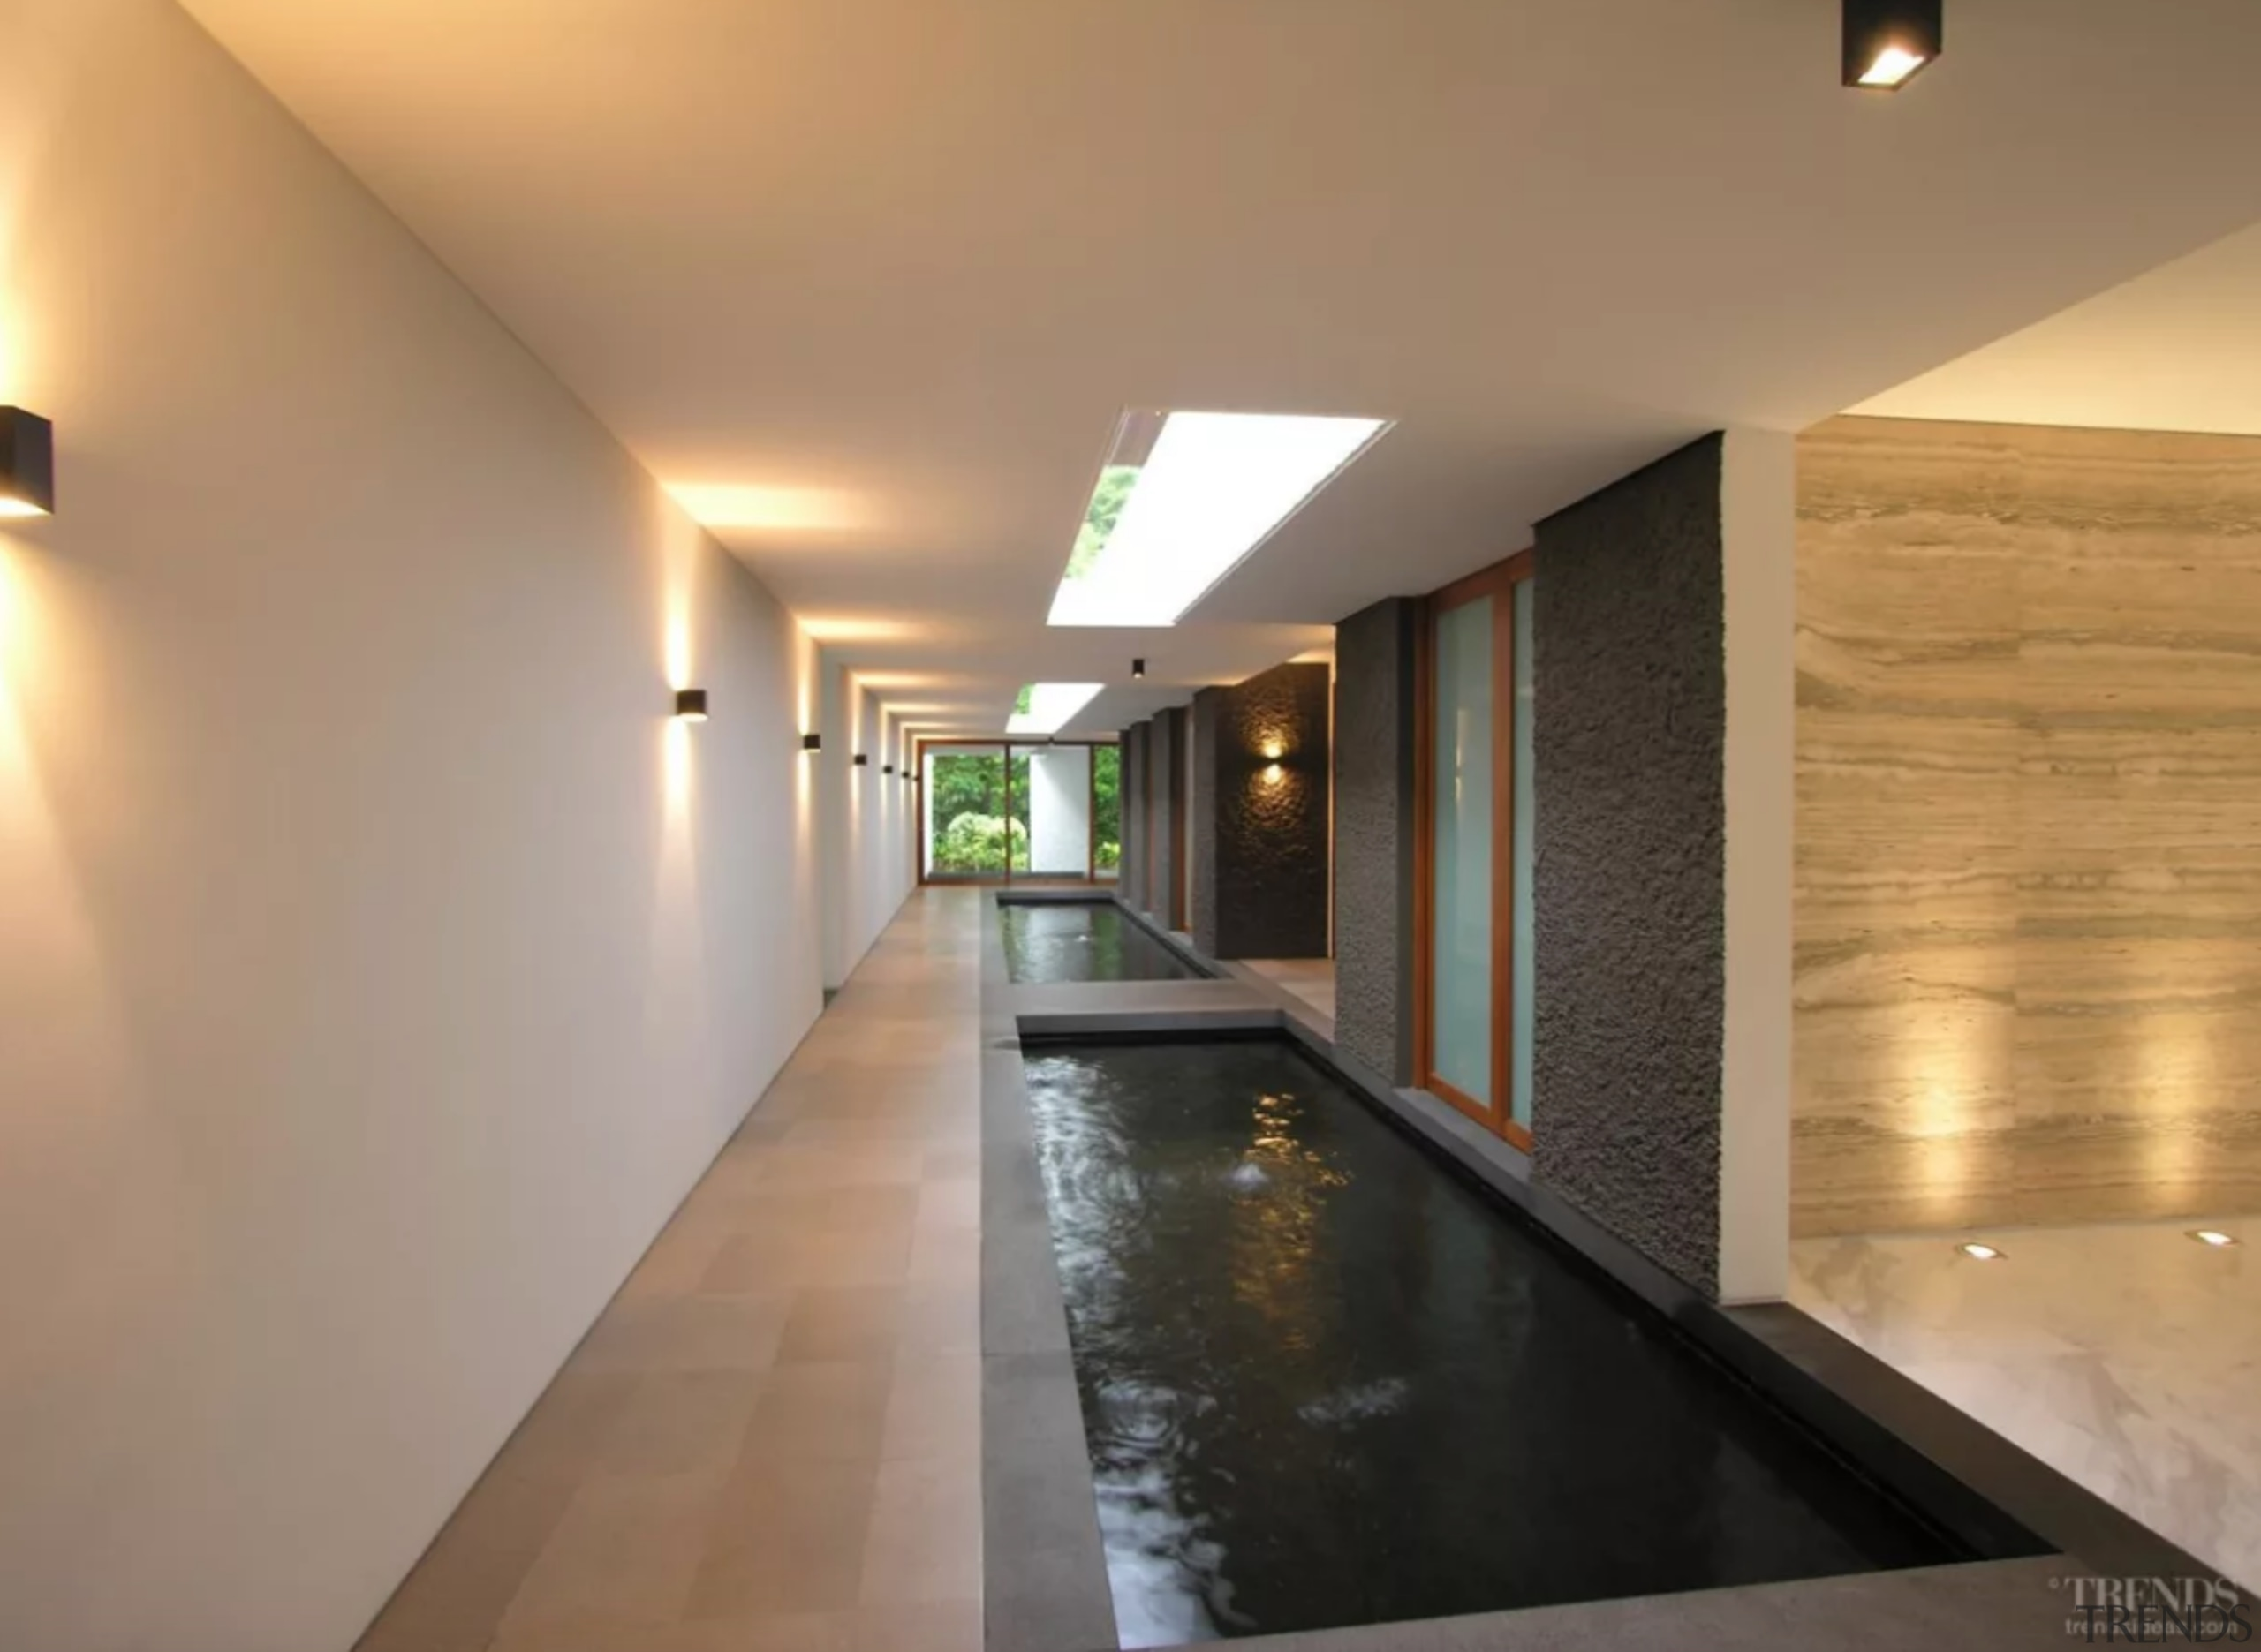 A 40m-long koi pond inside the house helps architecture, building, ceiling, floor, flooring, hall, house, interior design, lighting, lobby, property, real estate, room, wall, orange, brown